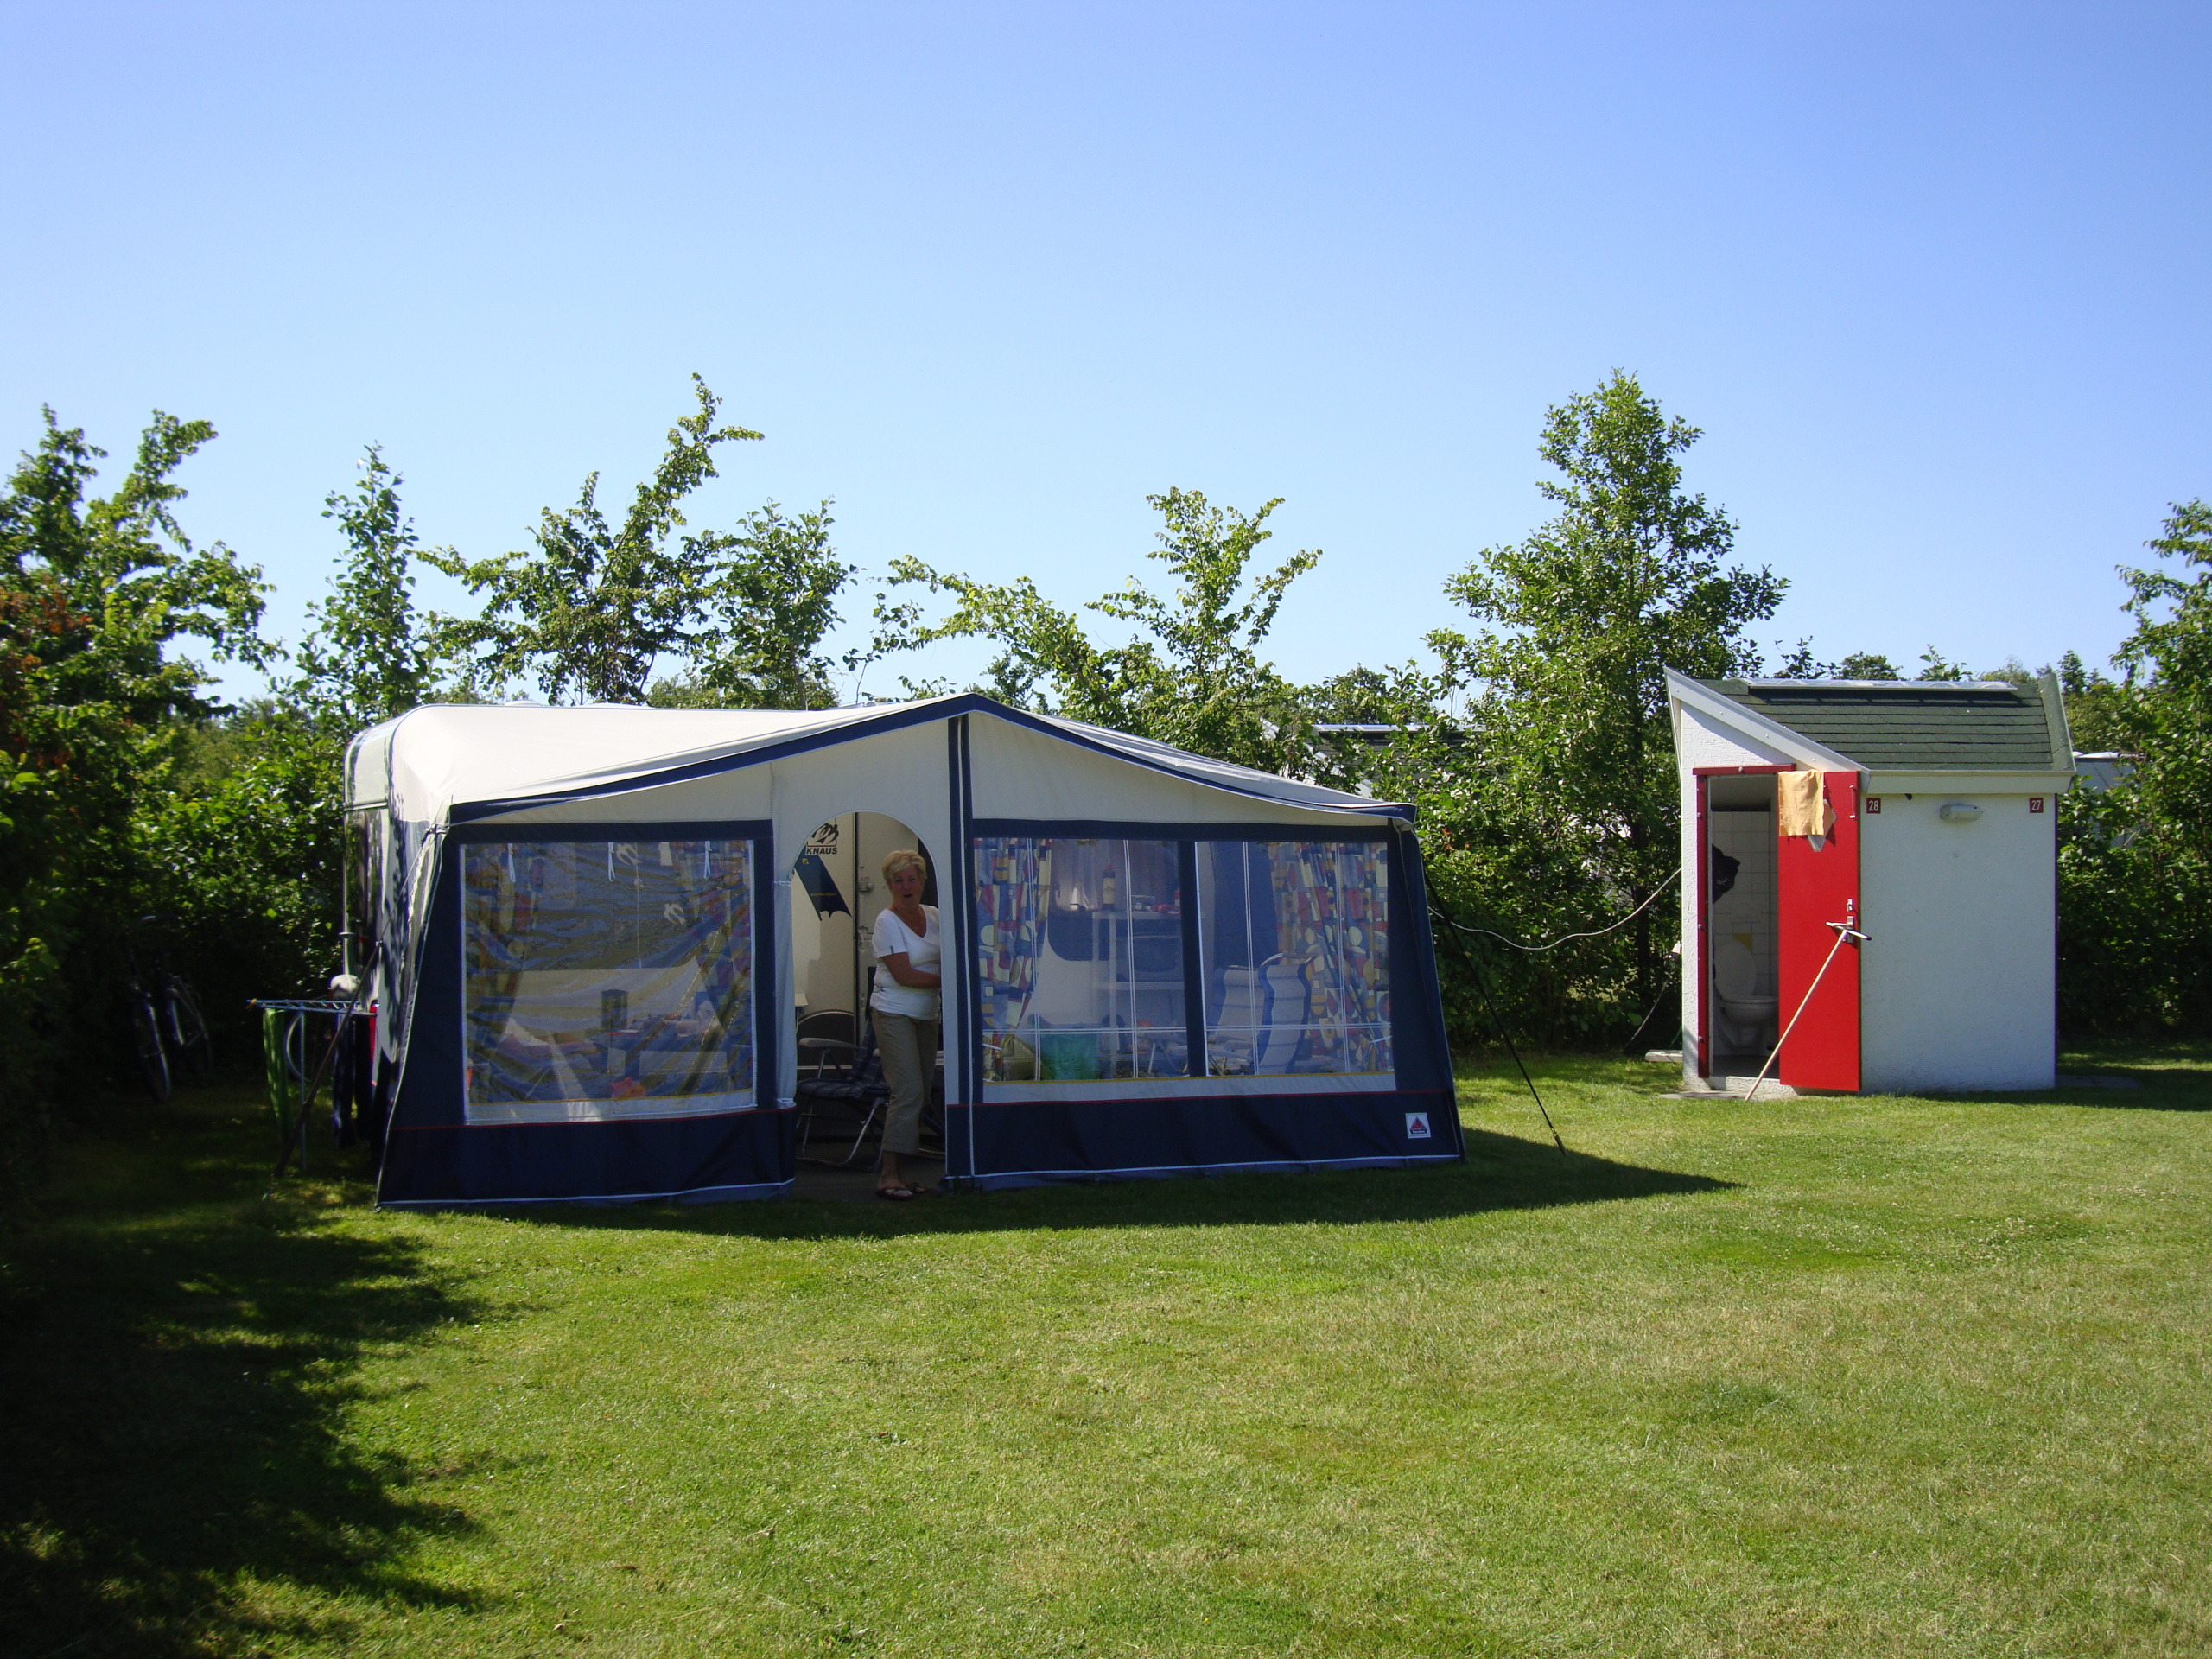 Camp luxuriously with its own sanitary facilities in the middle of forest De Dennen